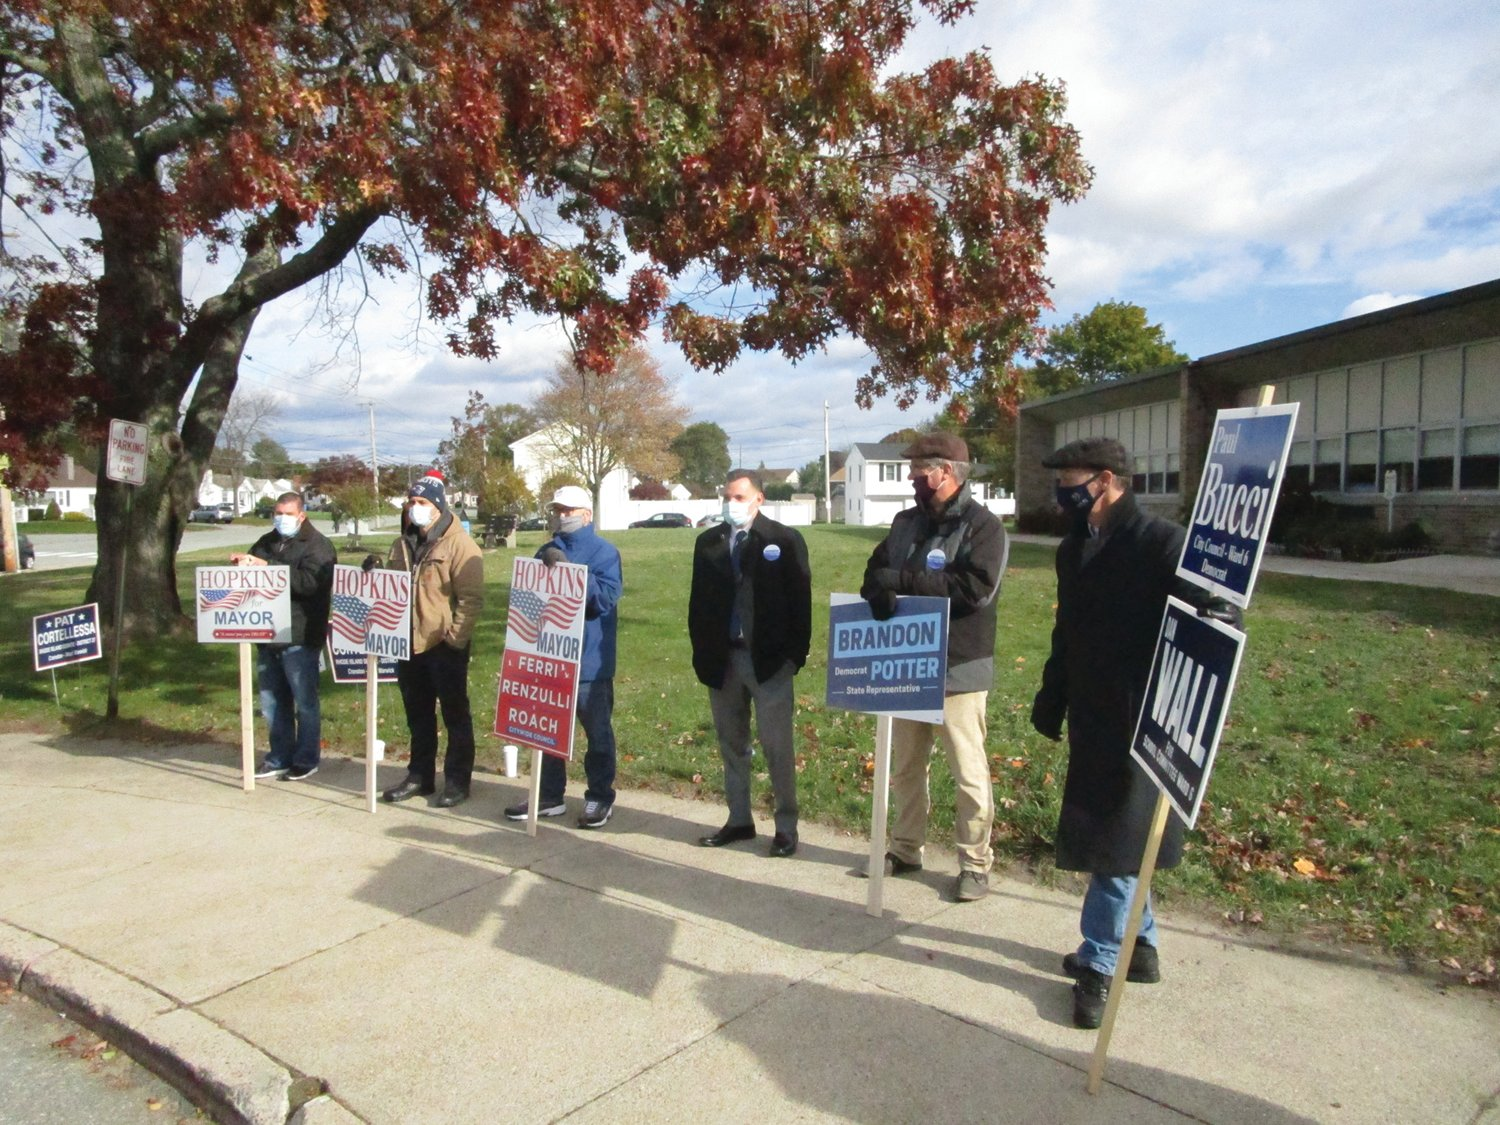 FINAL PITCH: House District 16 candidate Brandon Potter, third from right, and School Committee Chairman Daniel Wall, right, who is unopposed for reelection, were among those campaigning outside Garden City Elementary School Tuesday morning.